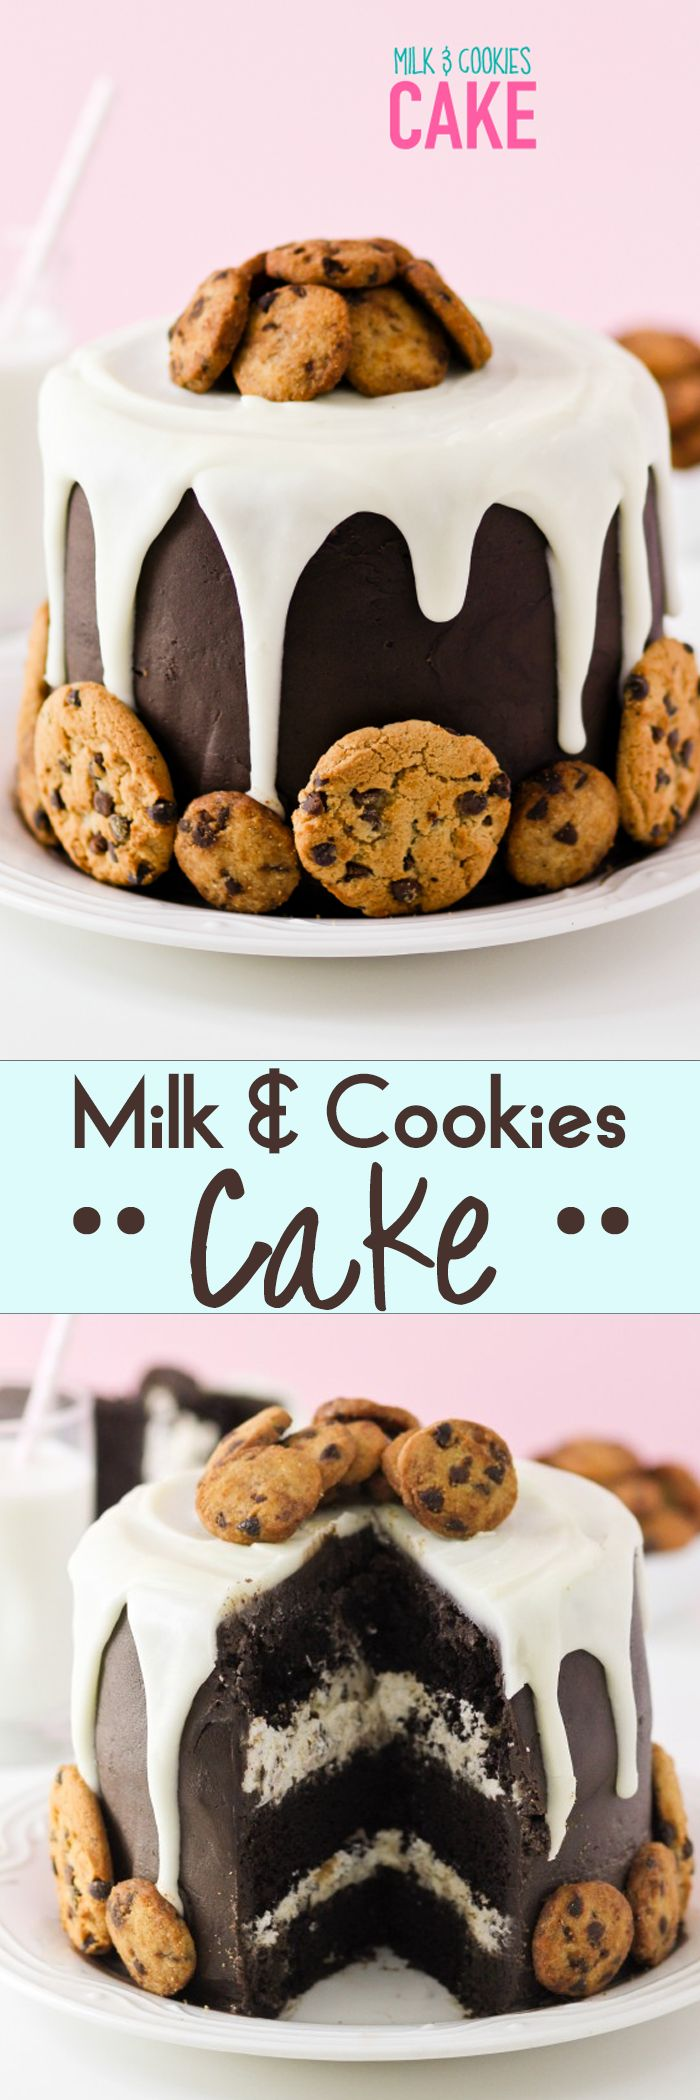 Milk & Cookies Cake -- how fun for a Milk & Cookies themed Birthday party?!?! LOVE LOVE LOVE.